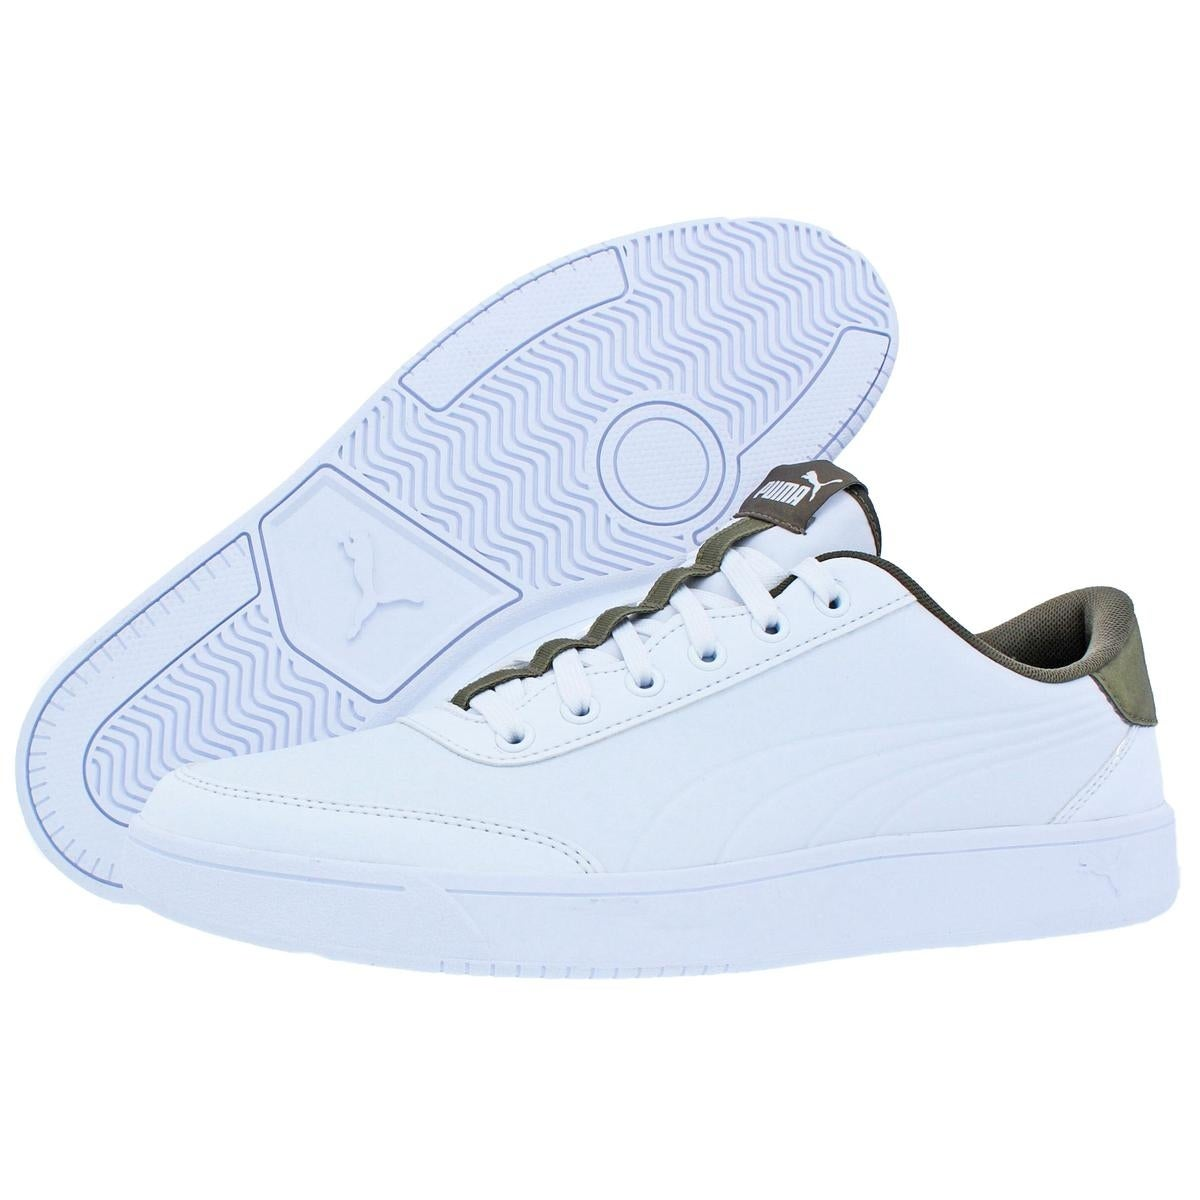 6f9f325aa936 Shop Puma Mens Court Breaker L Tennis Shoes Classic Performance - Free  Shipping On Orders Over  45 - Overstock - 22727112